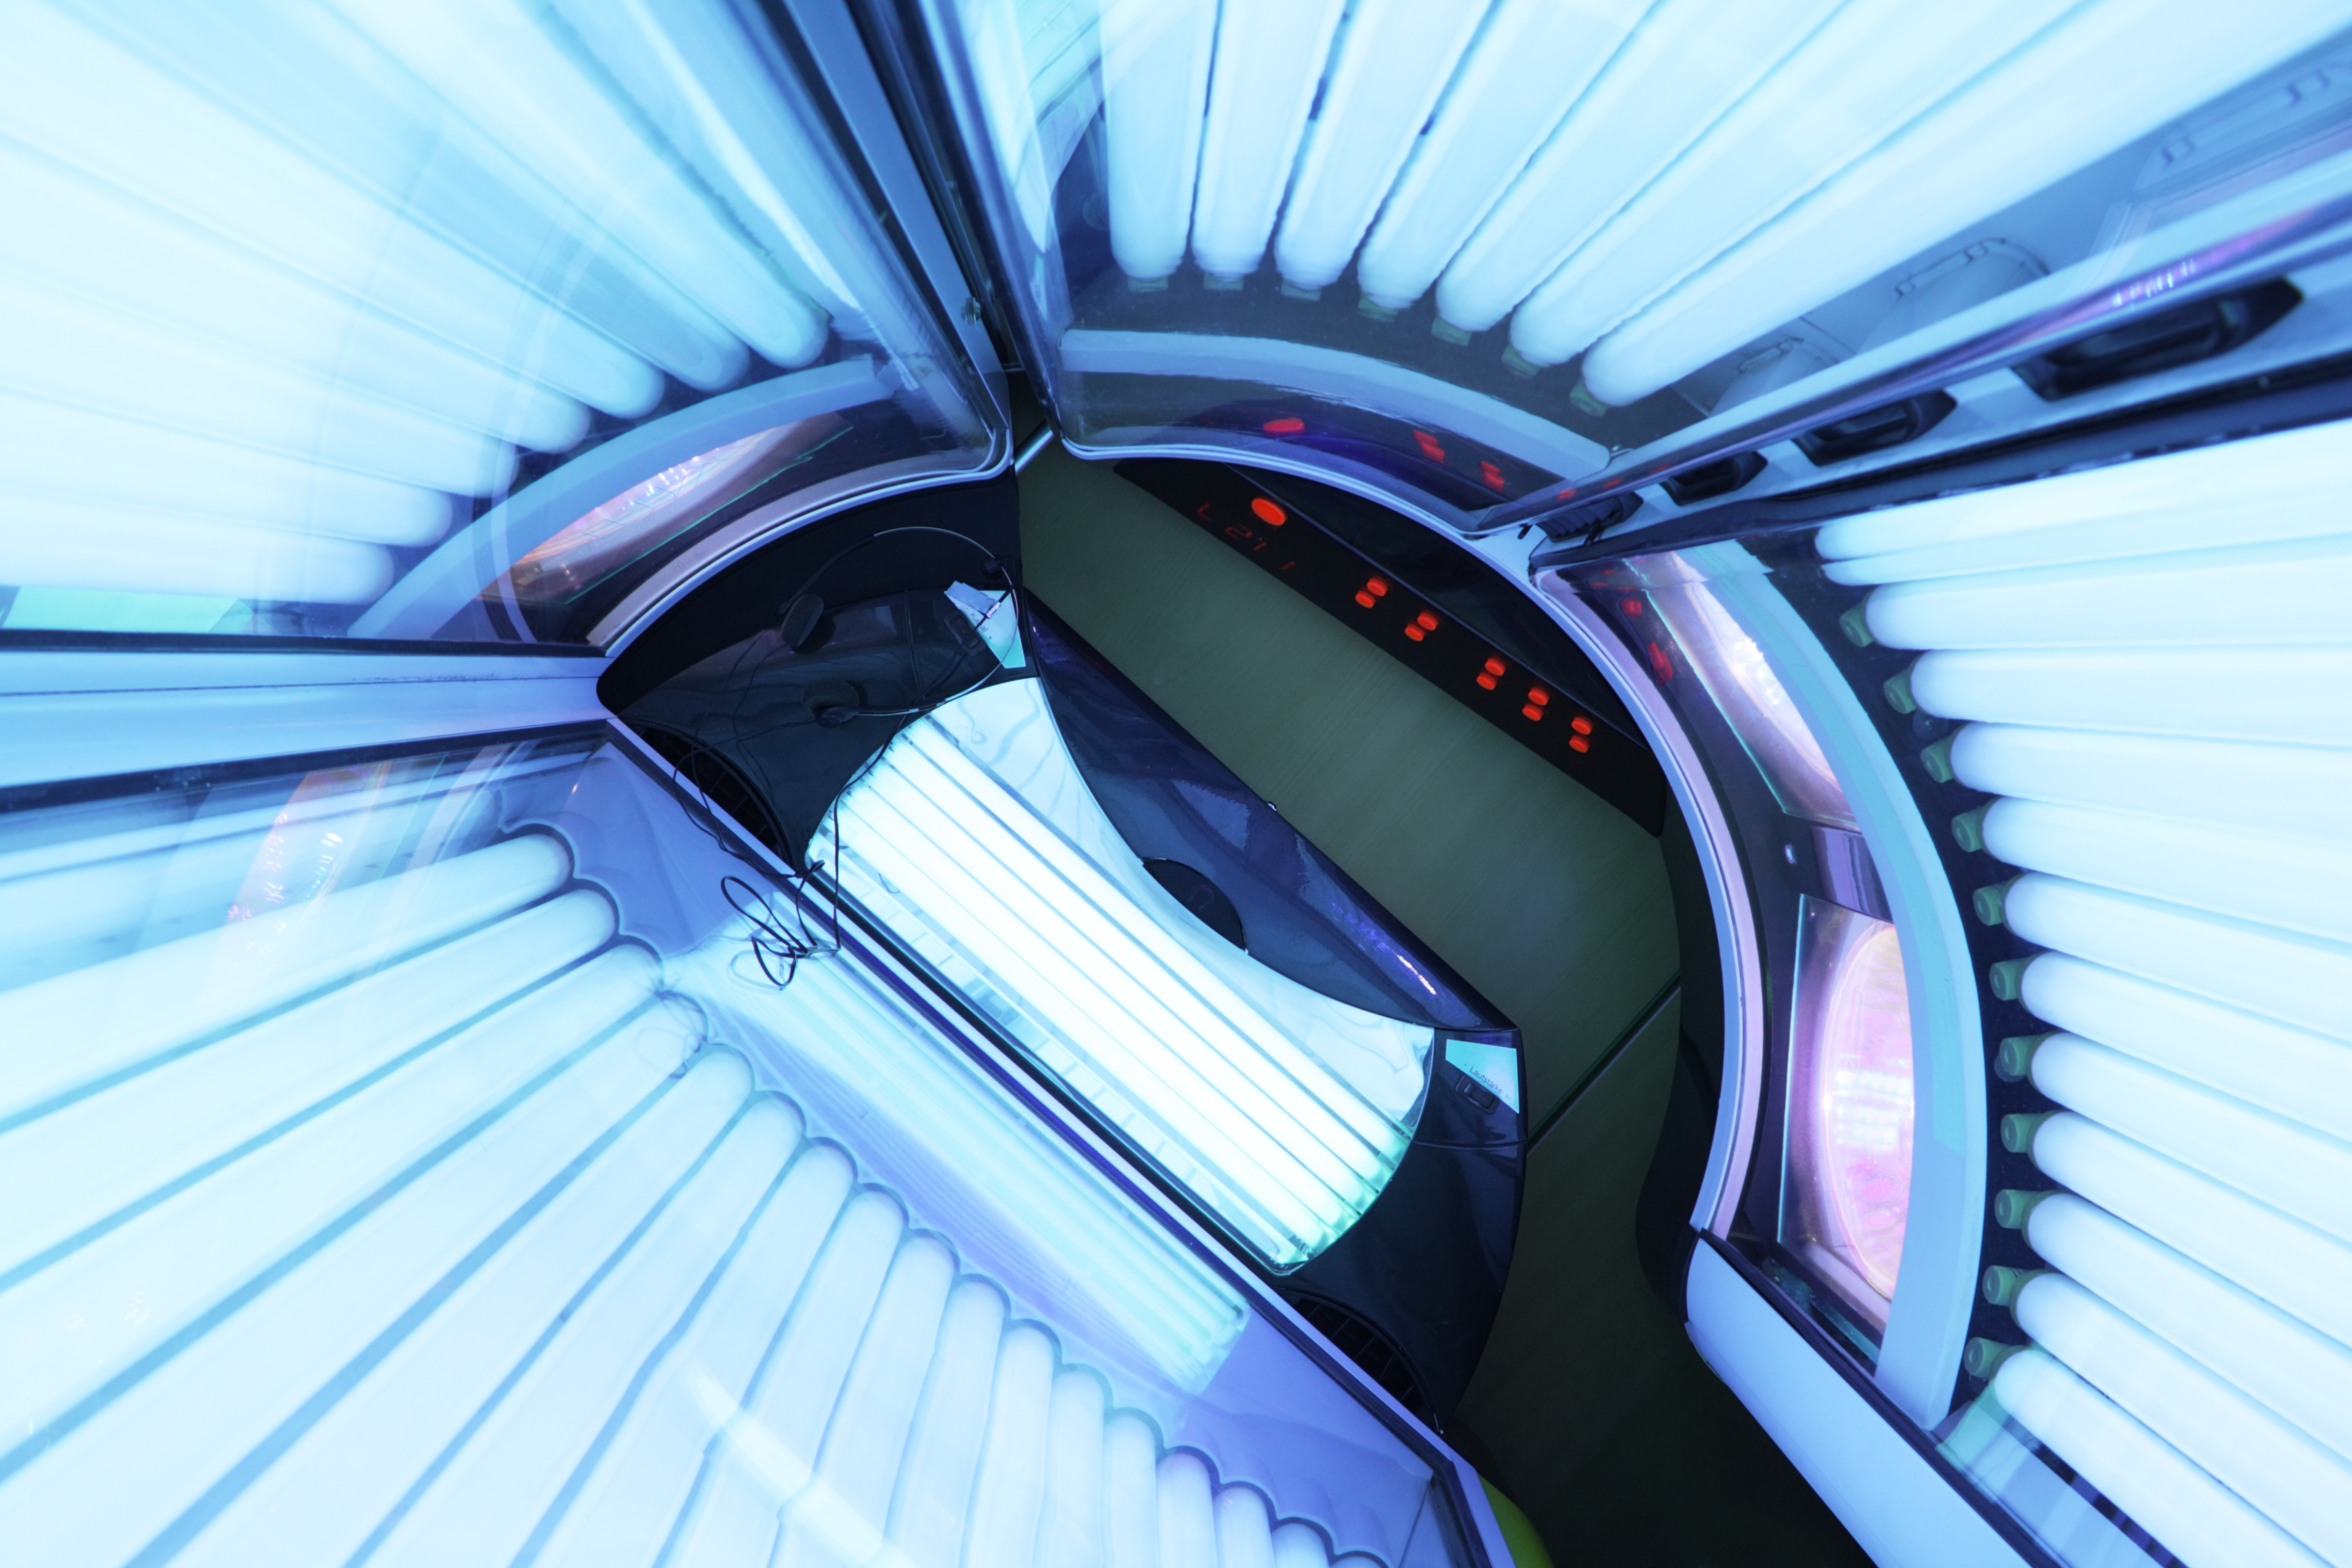 The inside of a tanning bed.